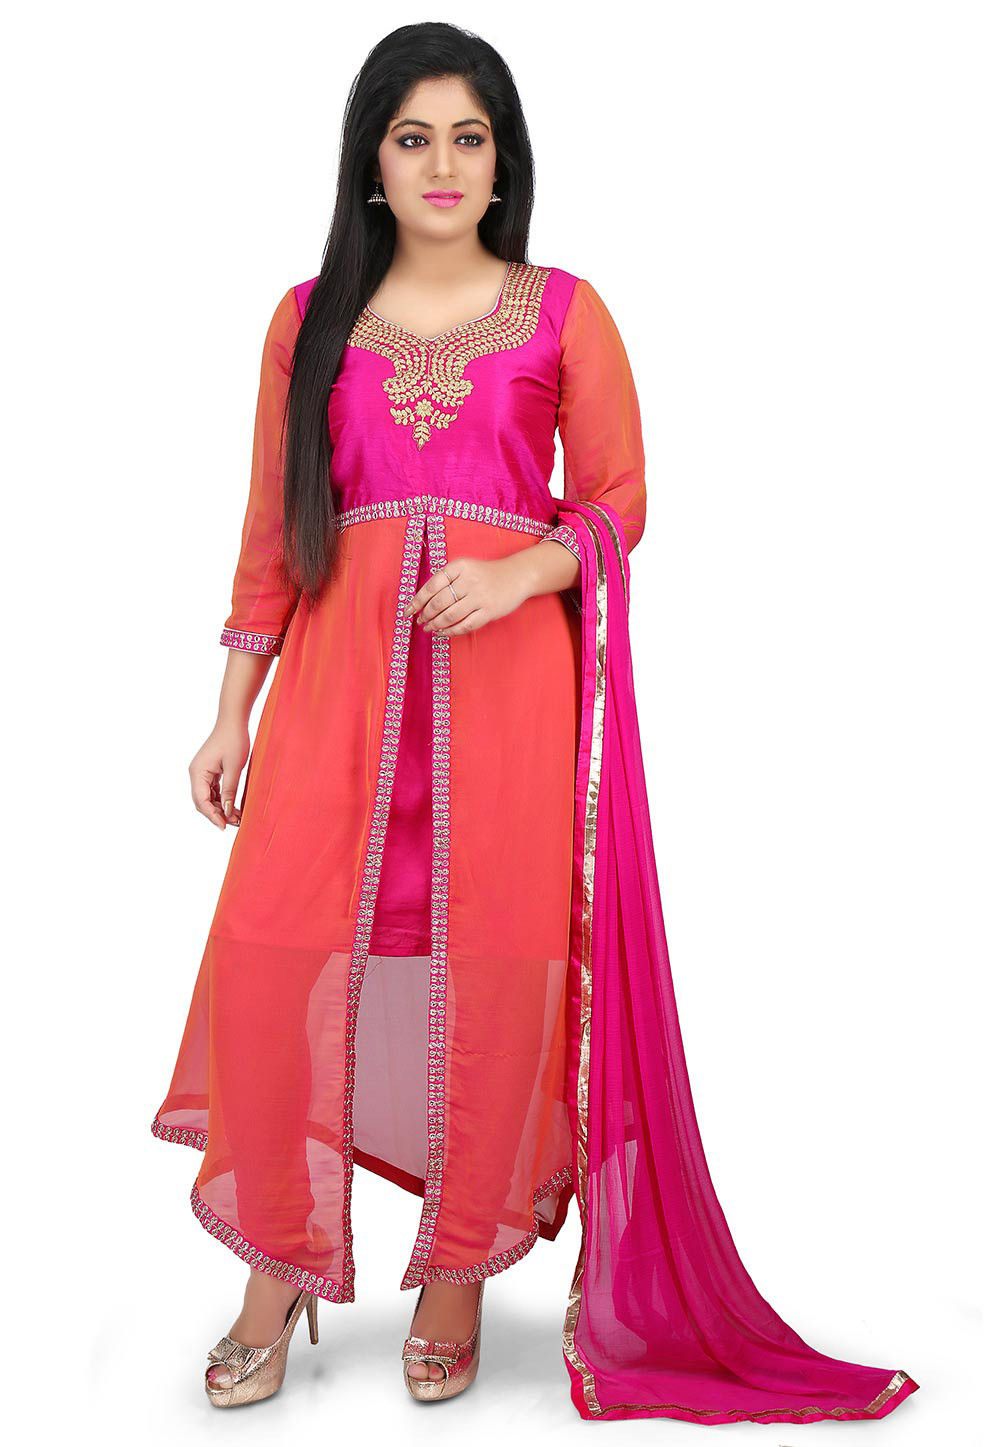 Embroidered Georgette Asymmetric Suit in Peach and Fuchsia